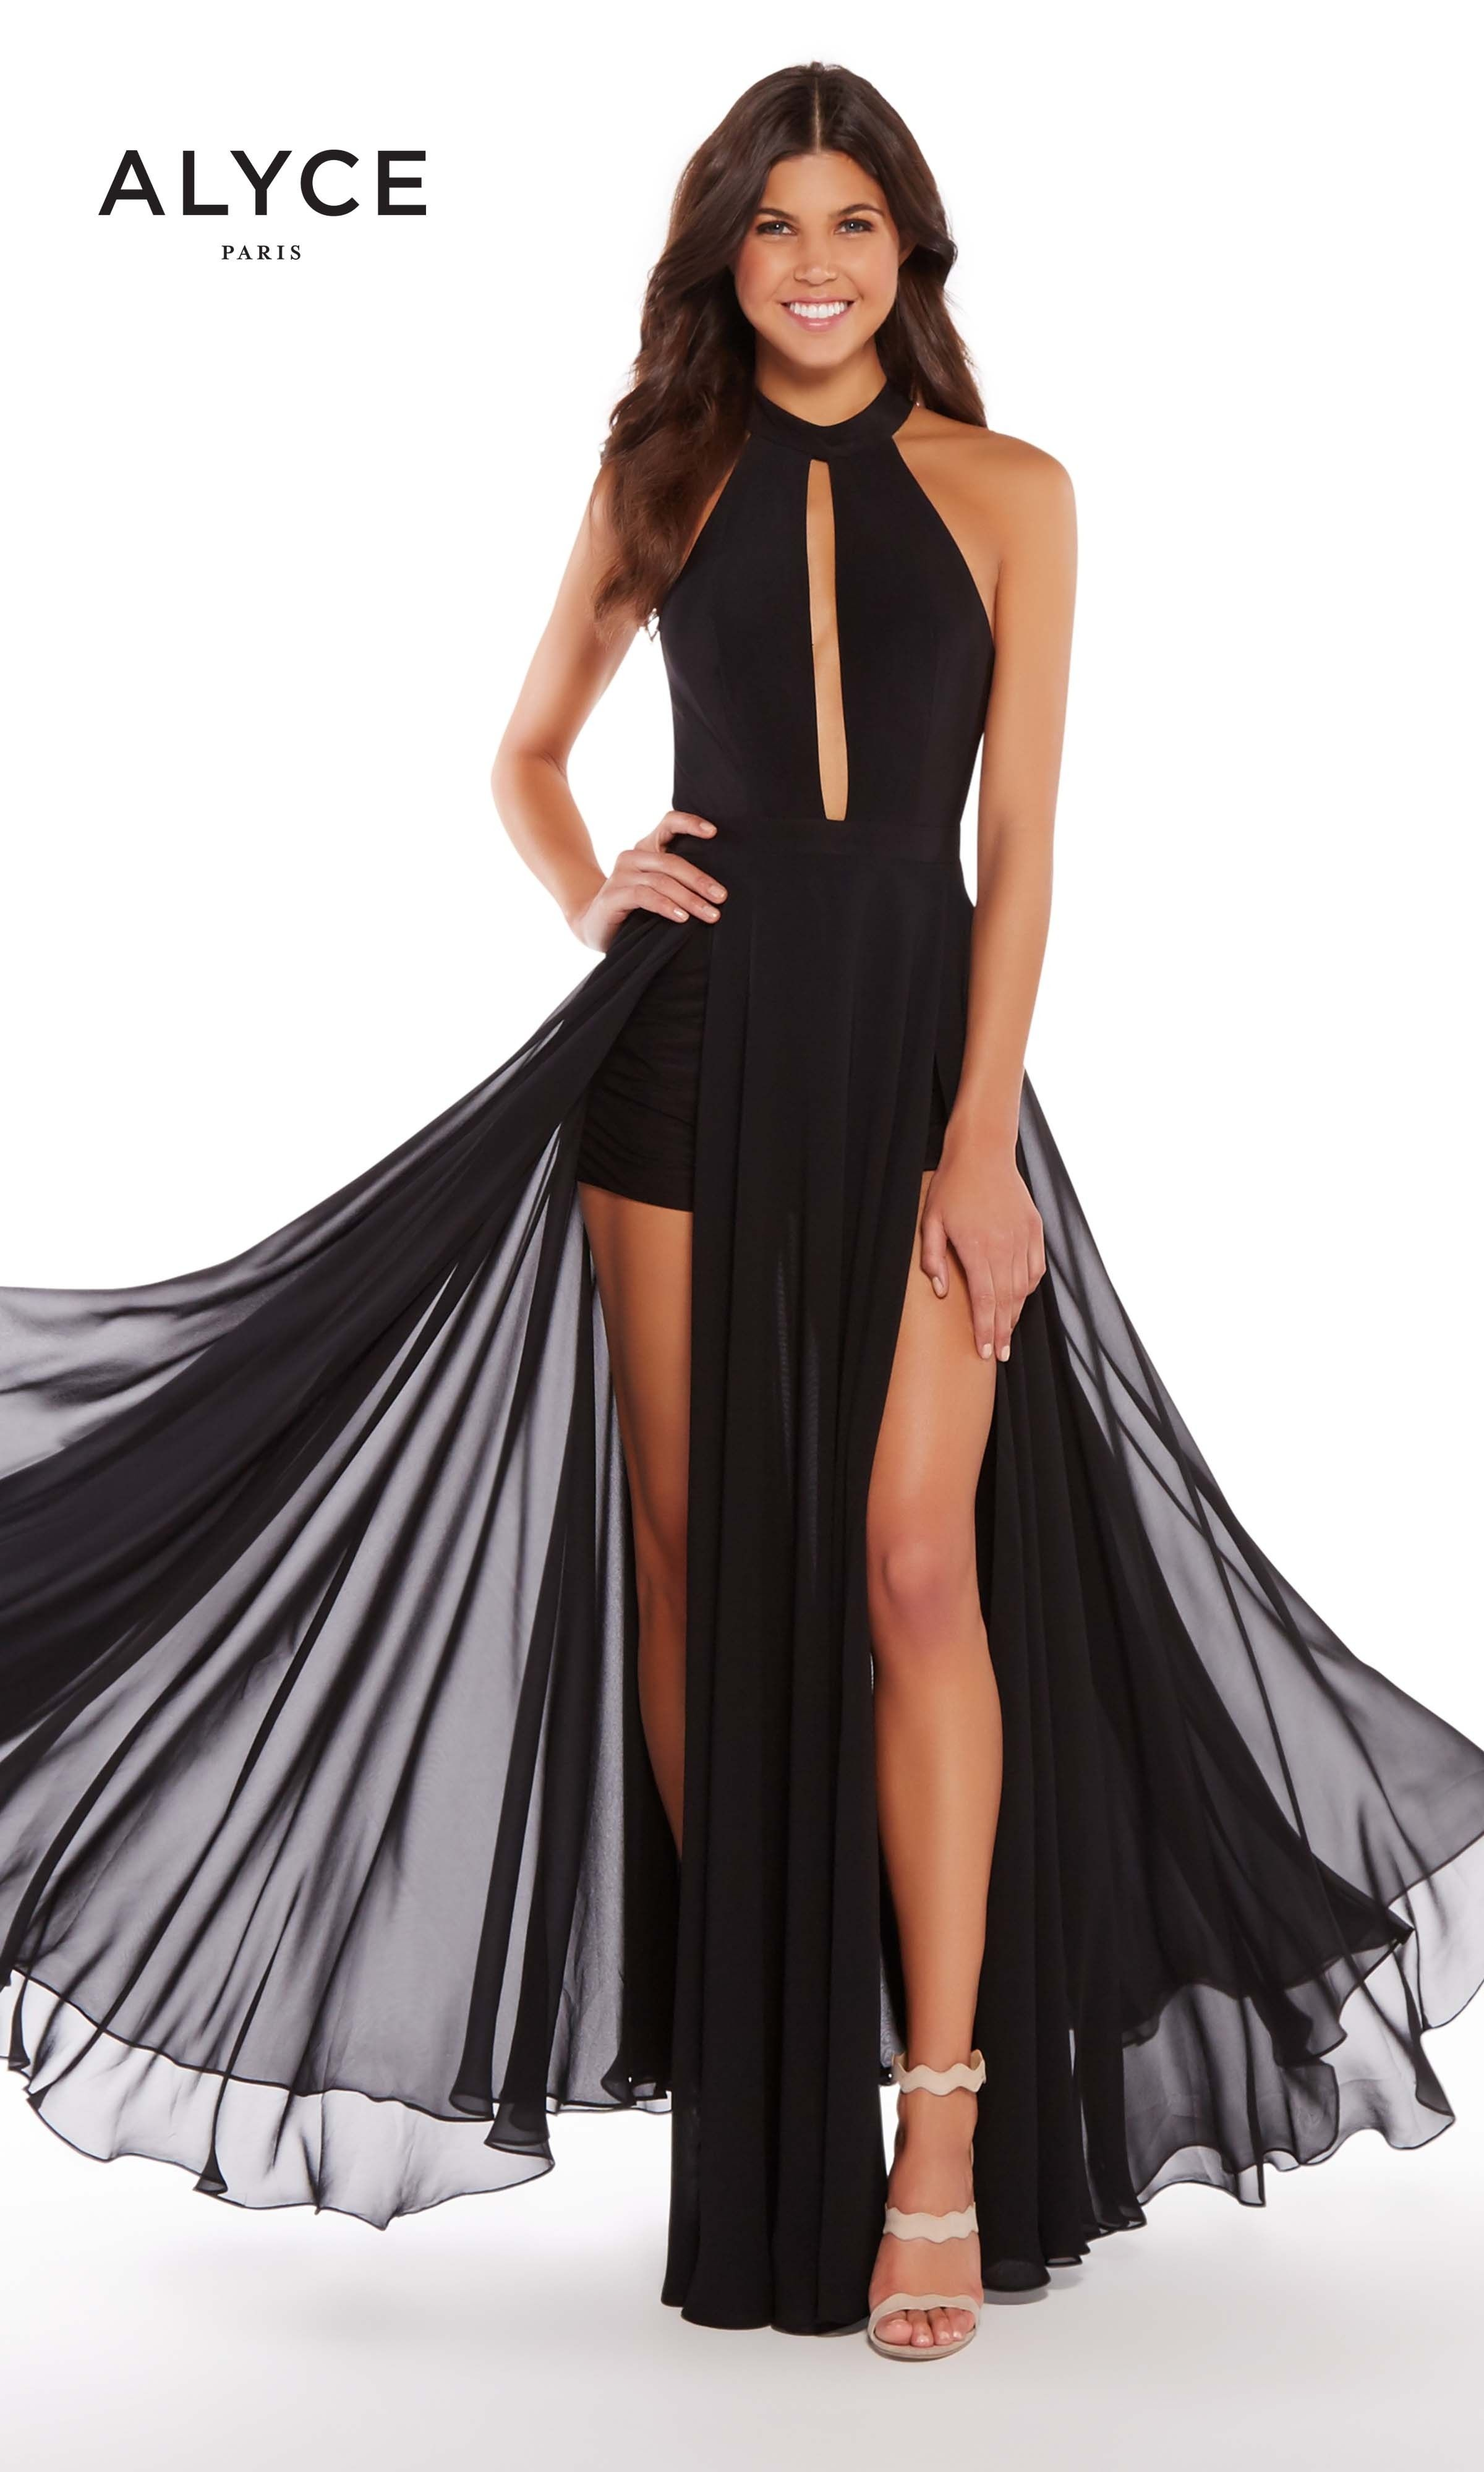 Alyce 59999 Black Chiffon Halter with Two Leg Slits and Shorts